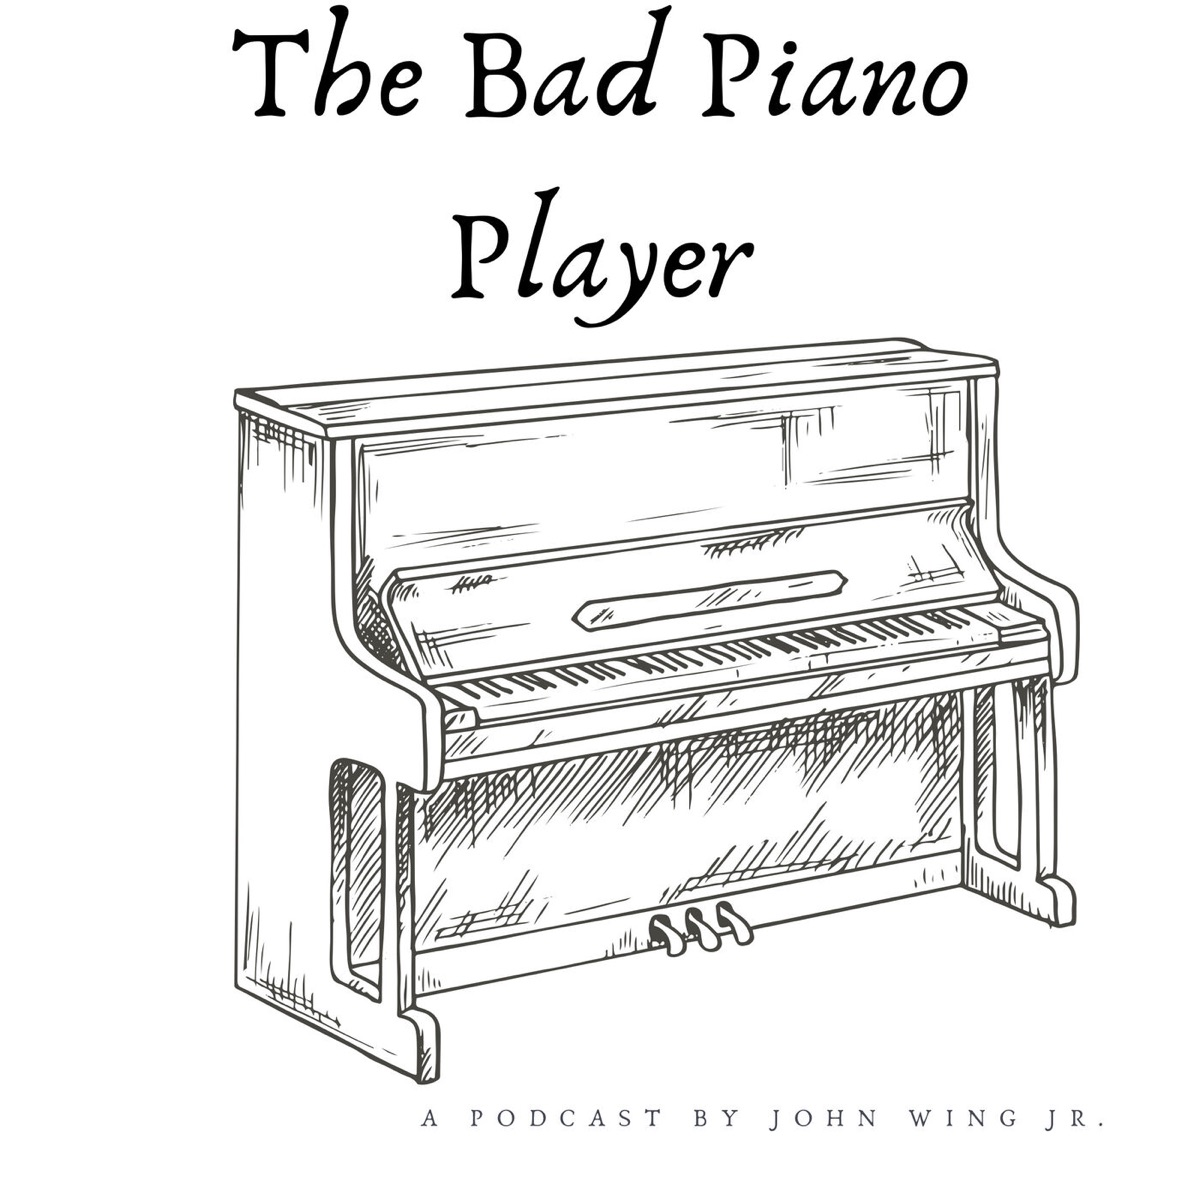 The Bad Piano Player